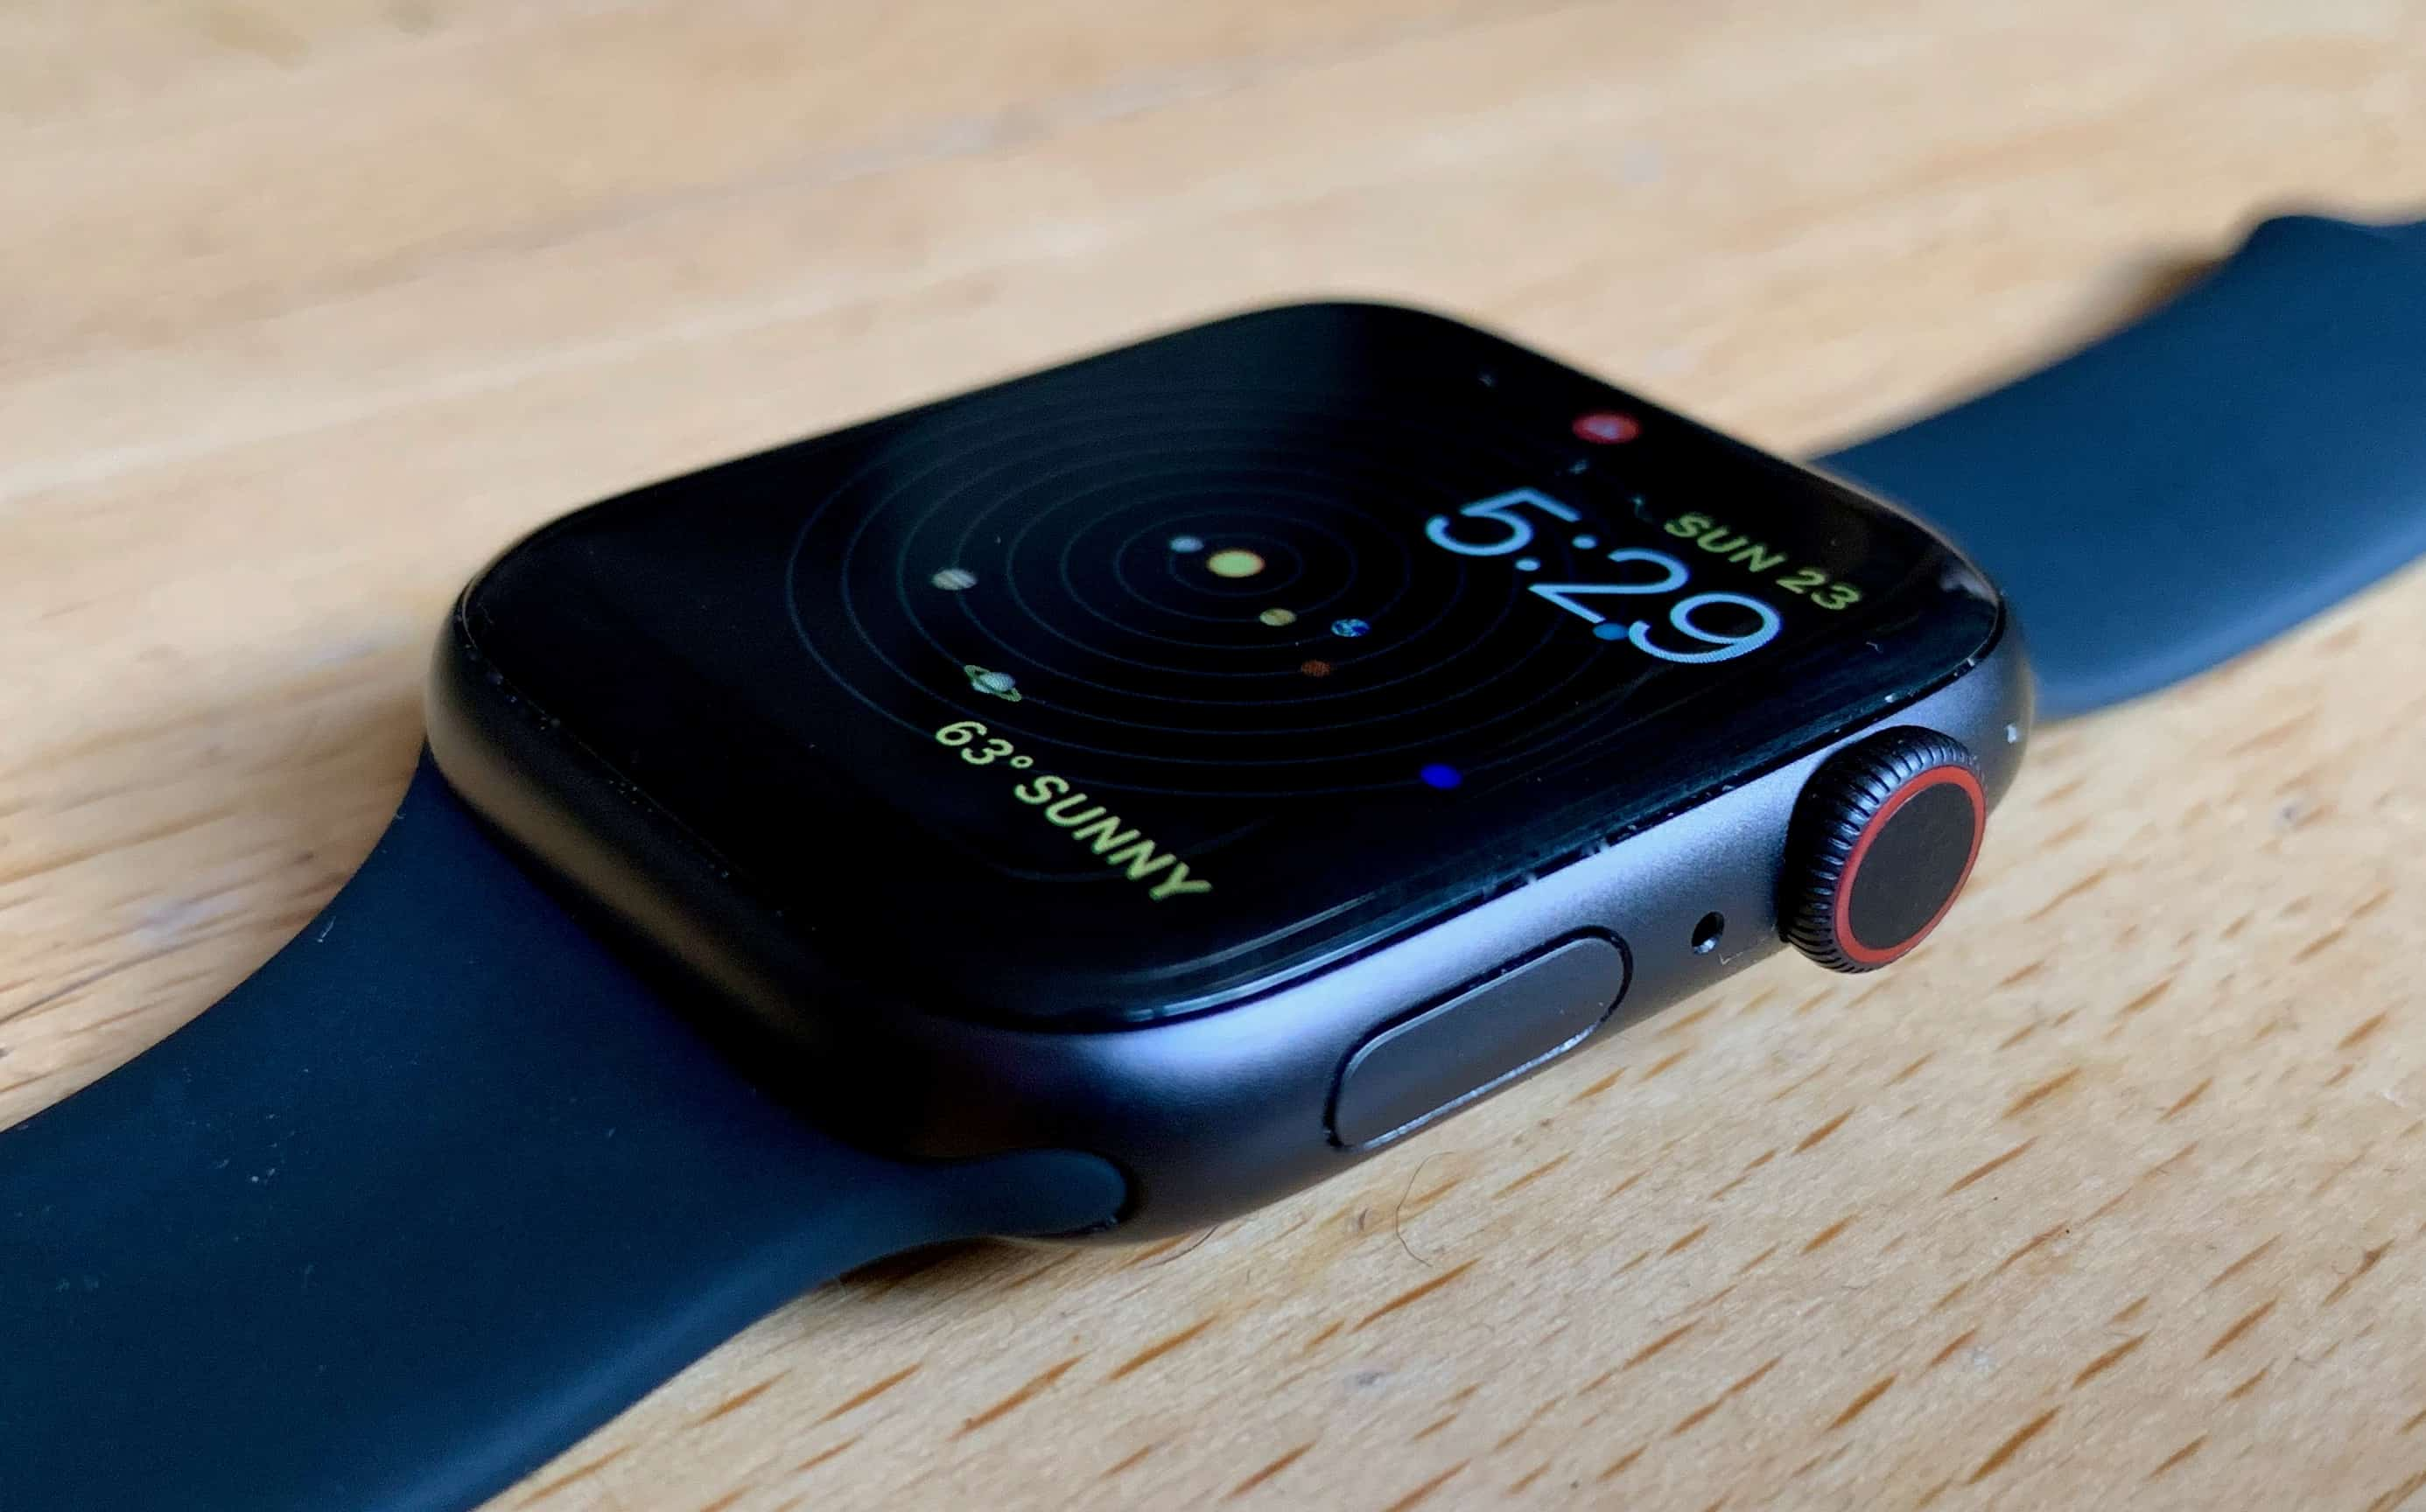 Apple Watch Series 4 side buttons